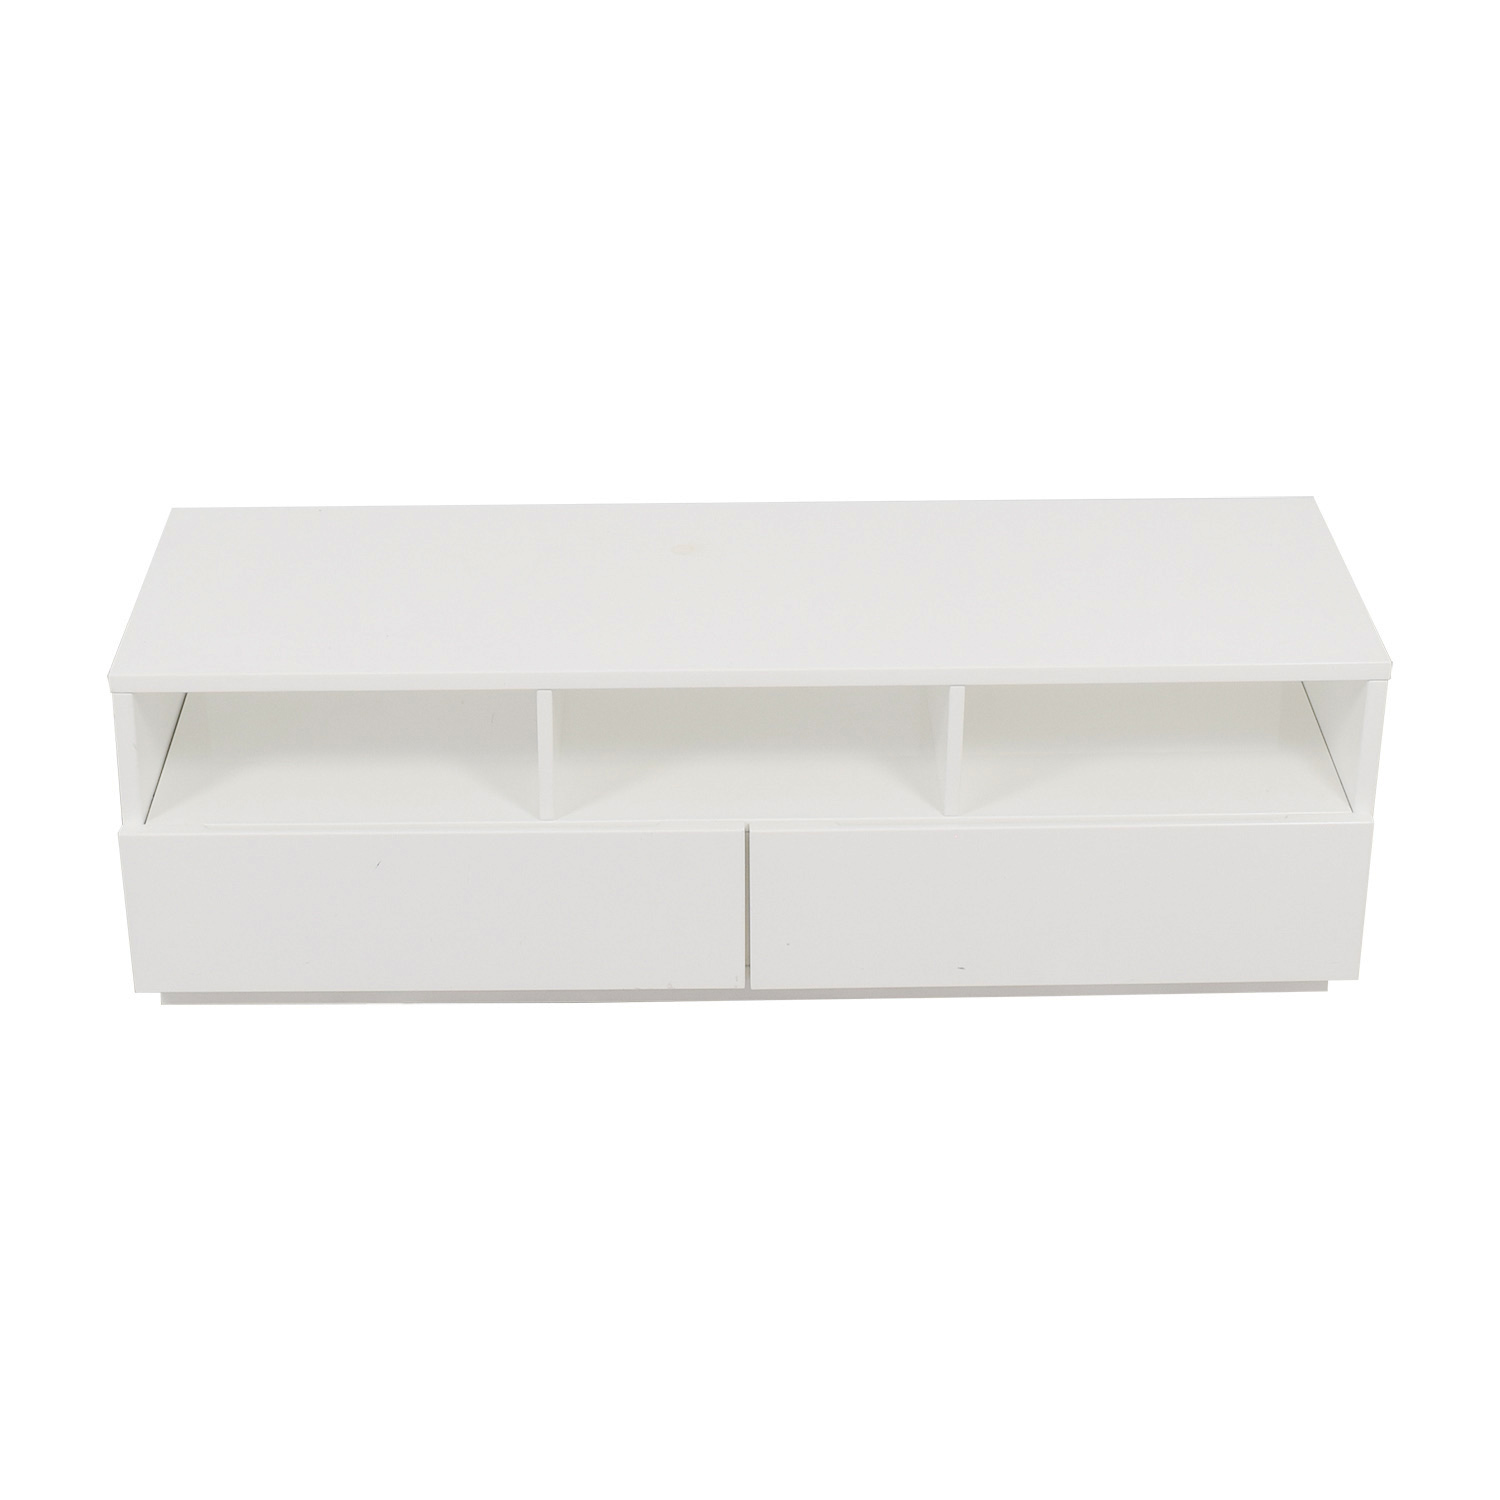 buy CB2 Chill White Media Console CB2